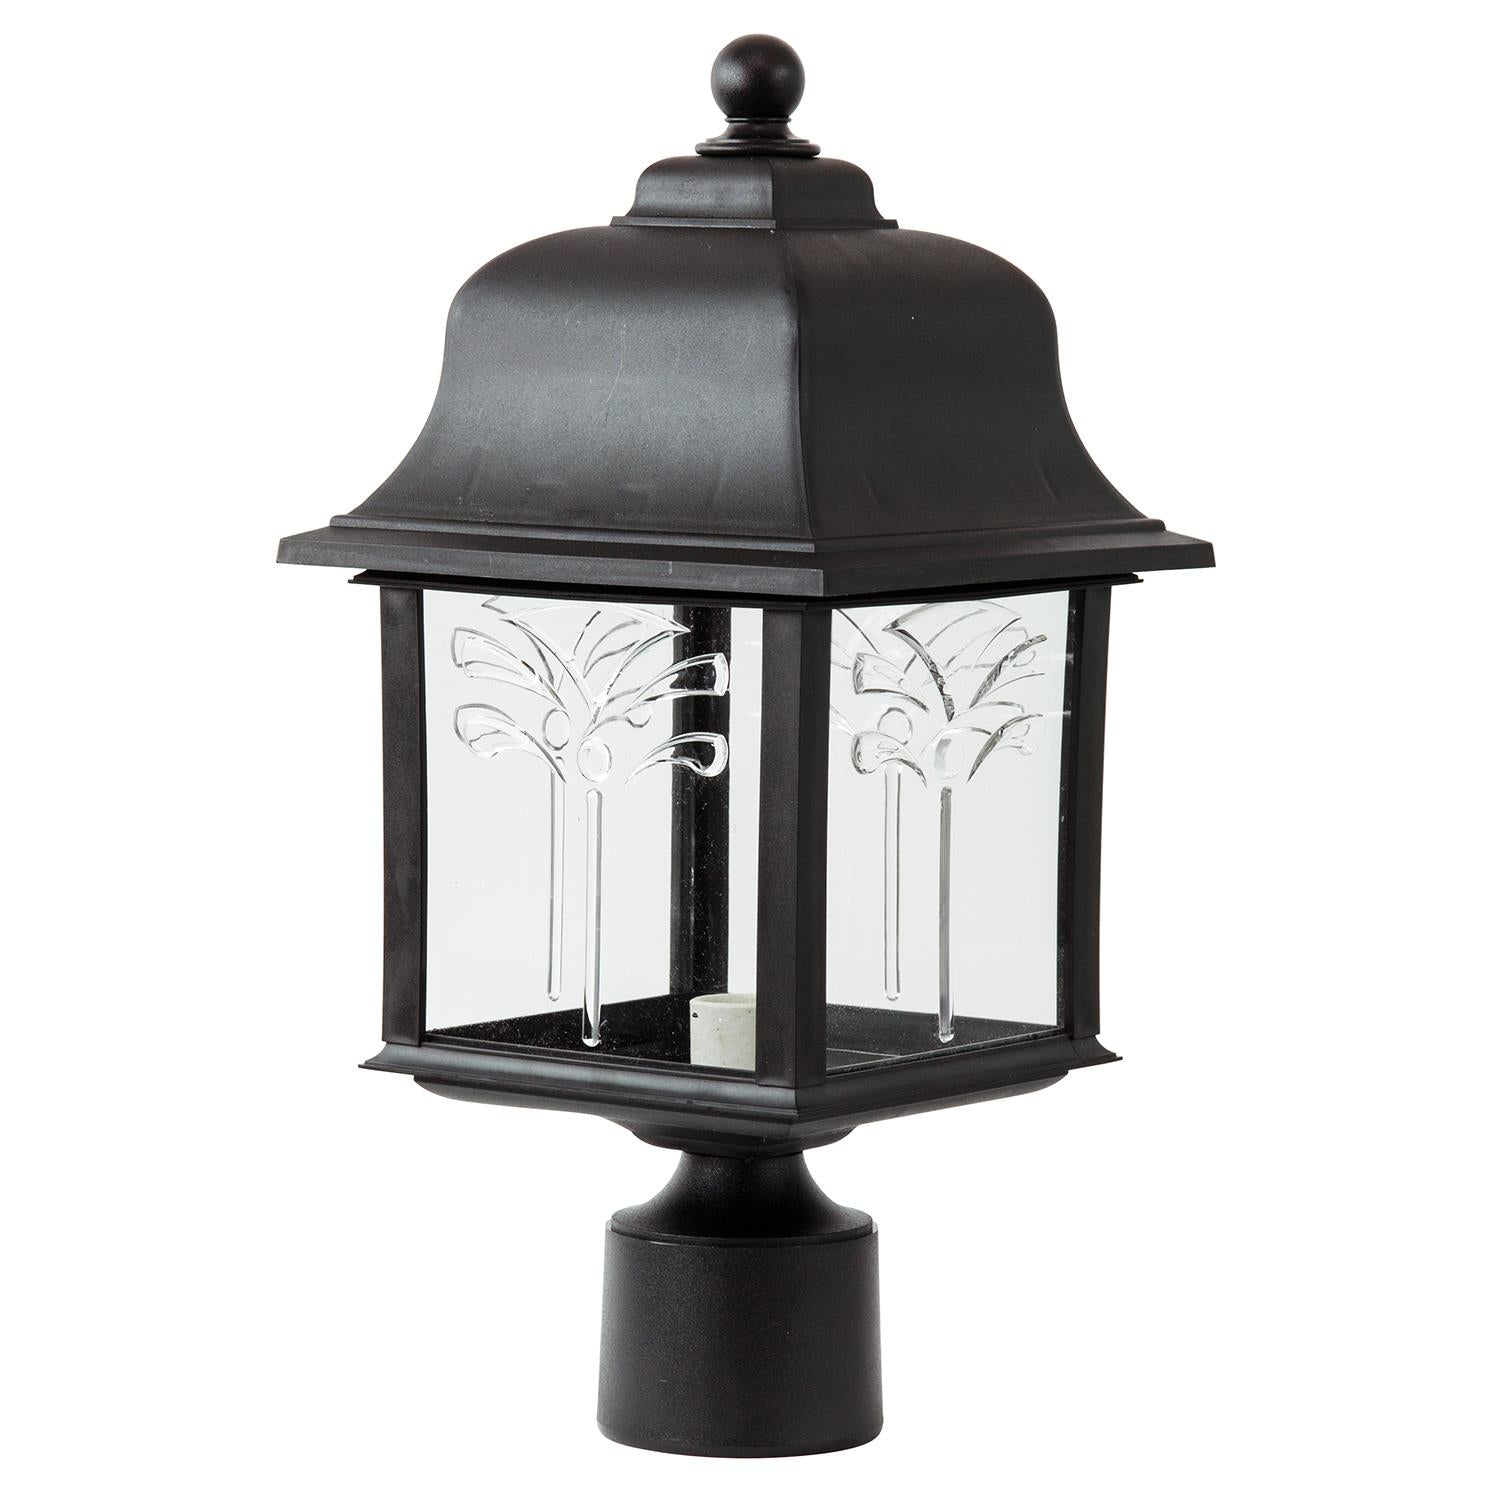 SUNLITE E26 Orchid Style Collection Black Outdoor Post Lights